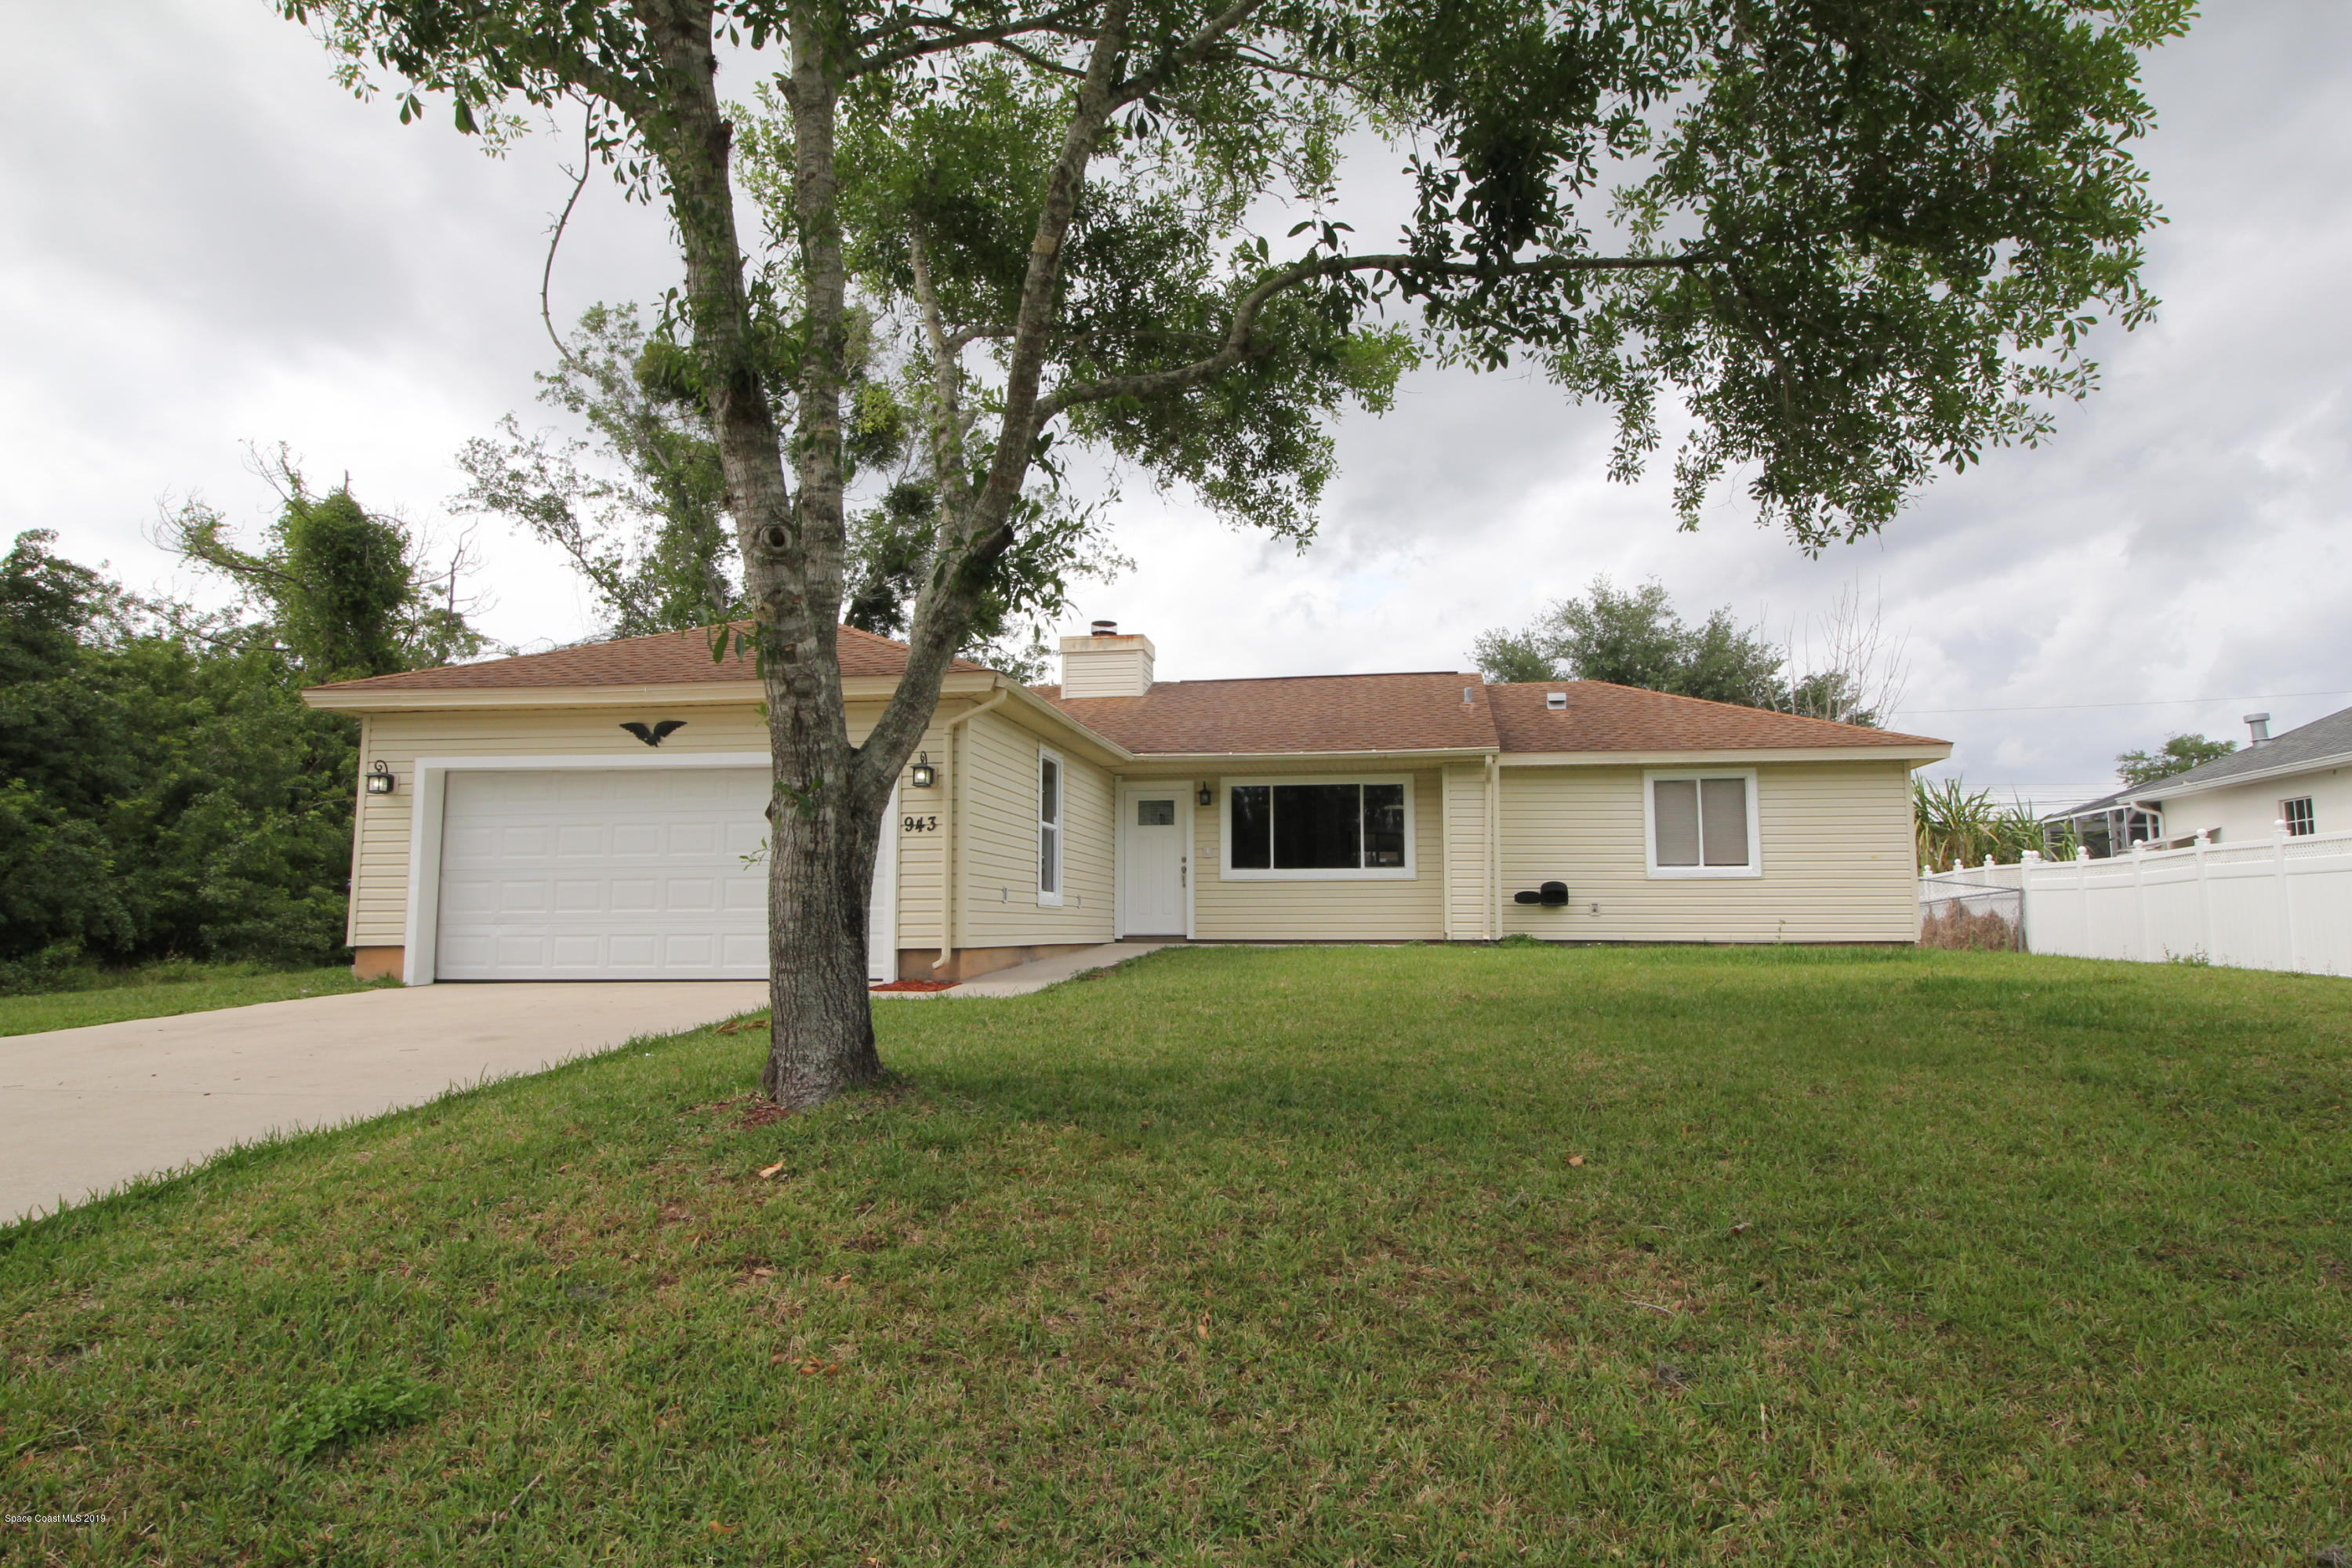 Single Family Home for Rent at 943 Dateland 943 Dateland Palm Bay, Florida 32909 United States